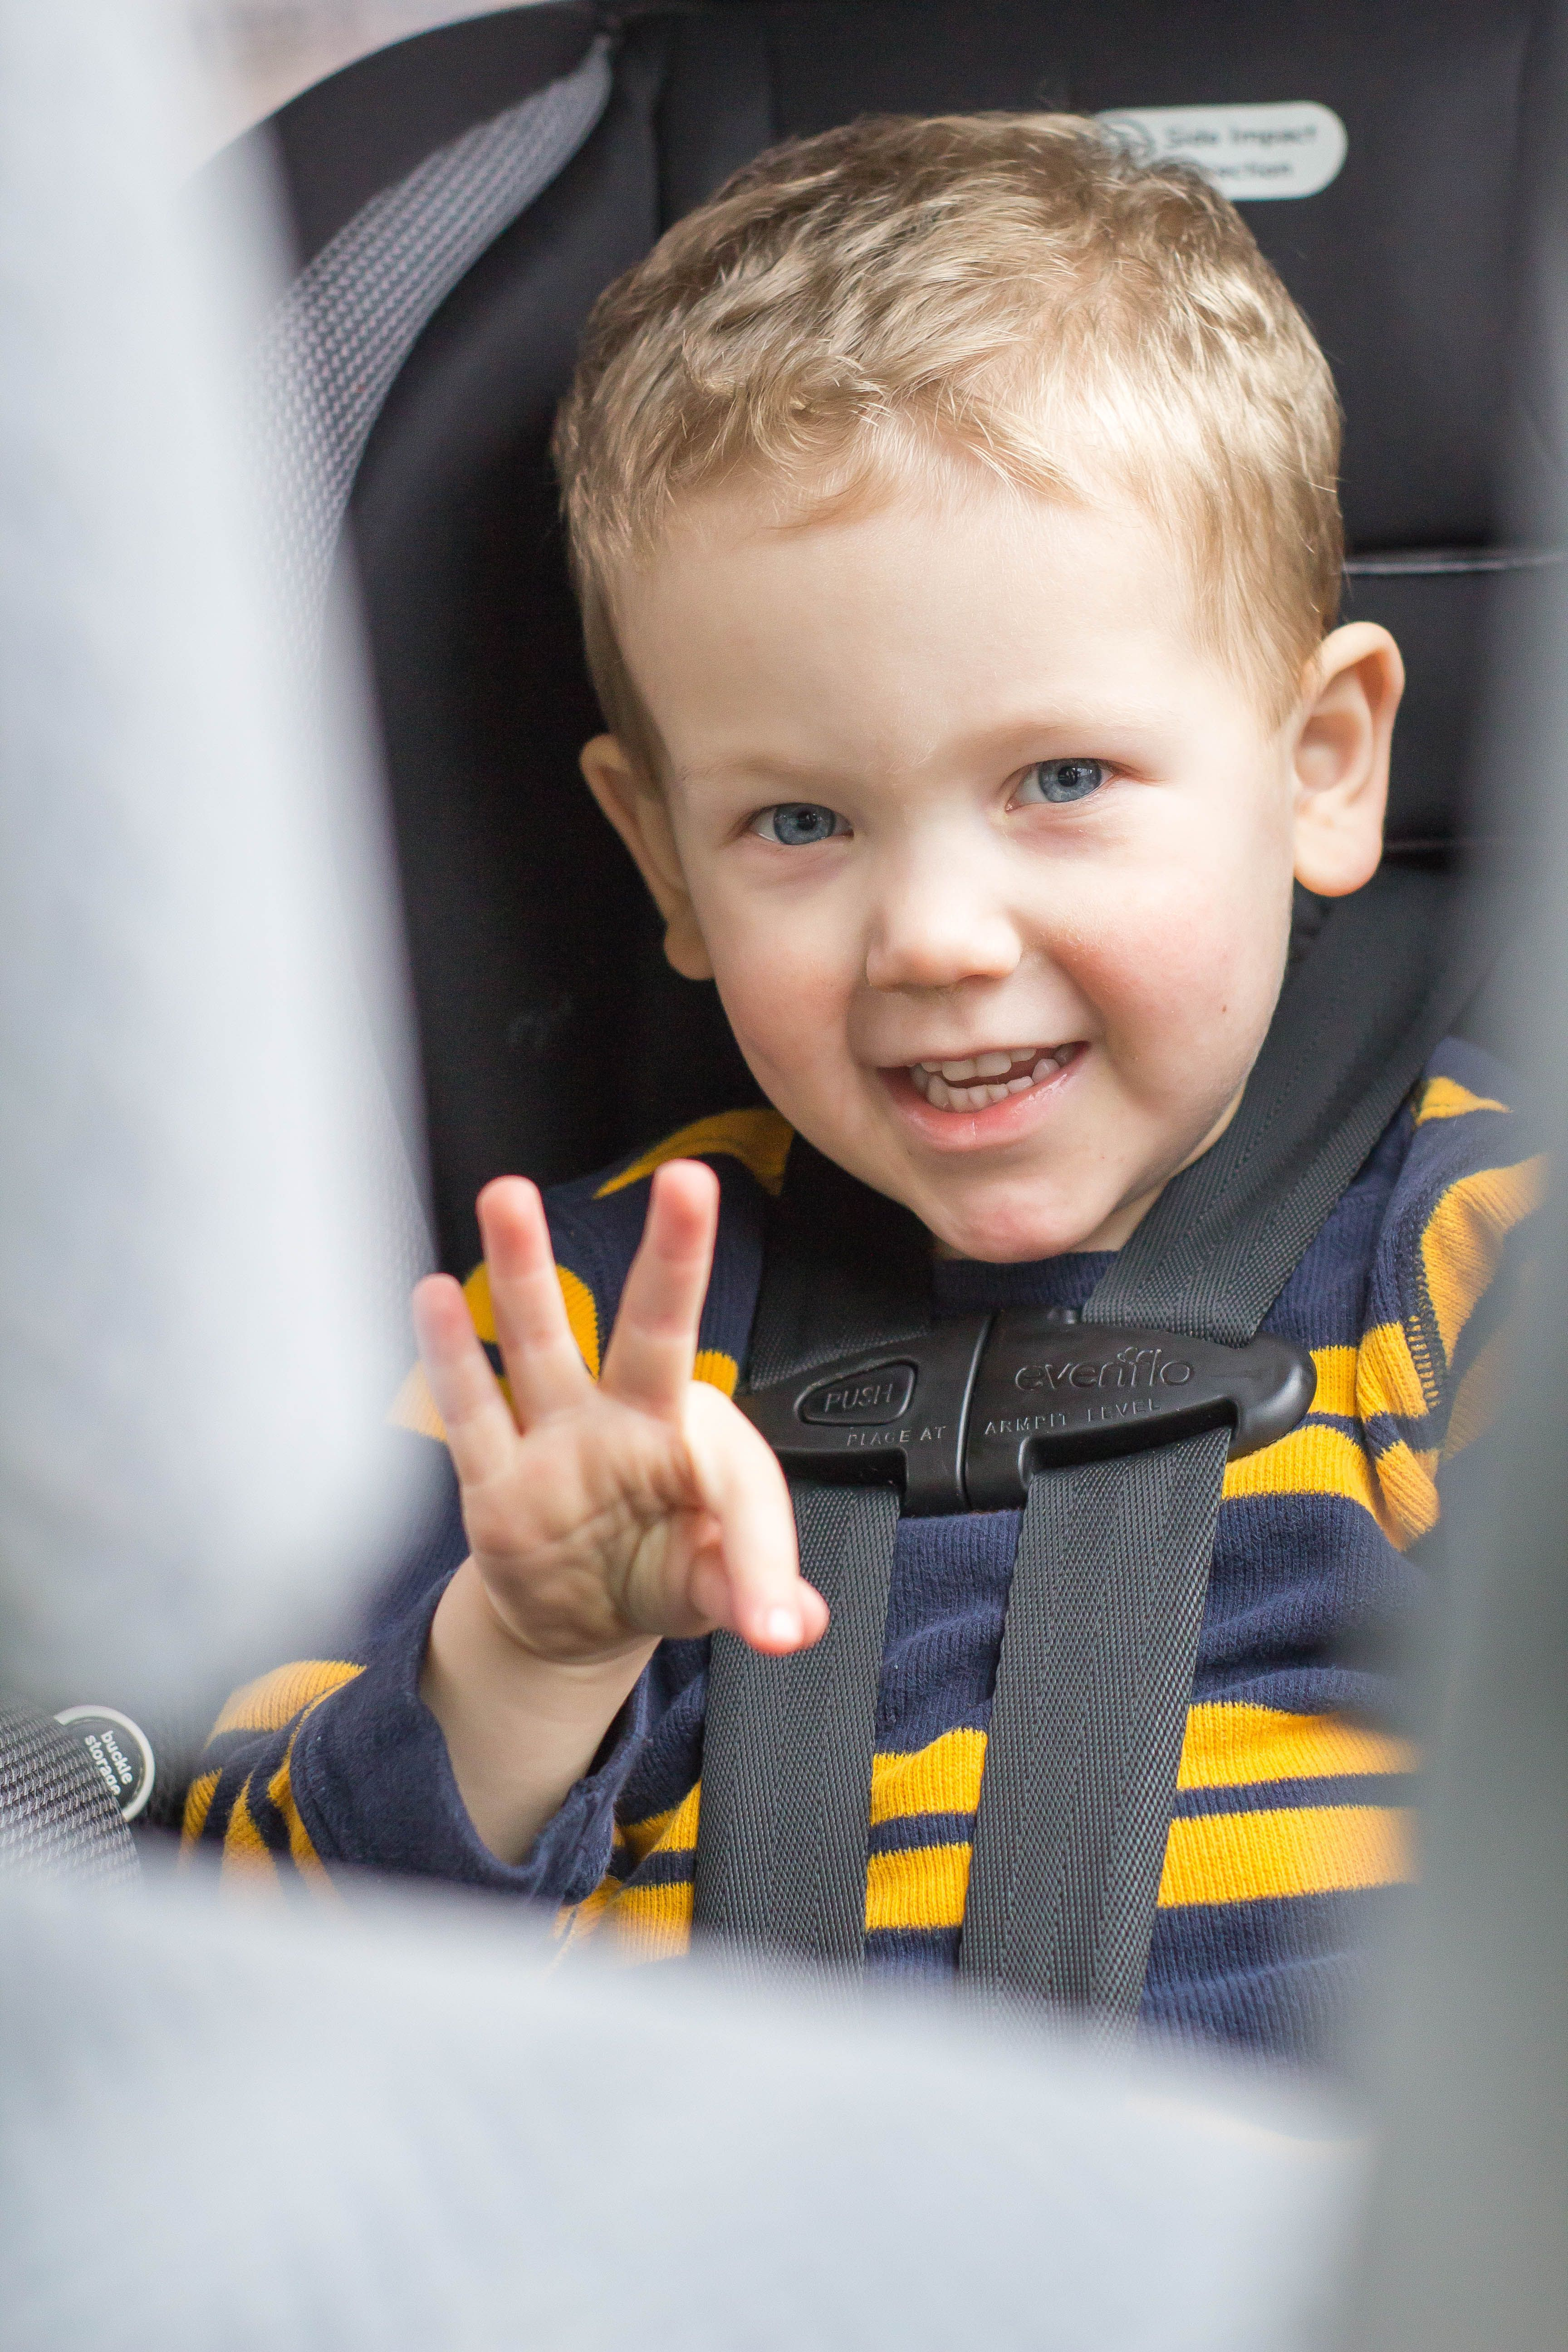 Car seat safety tips travel destinations European